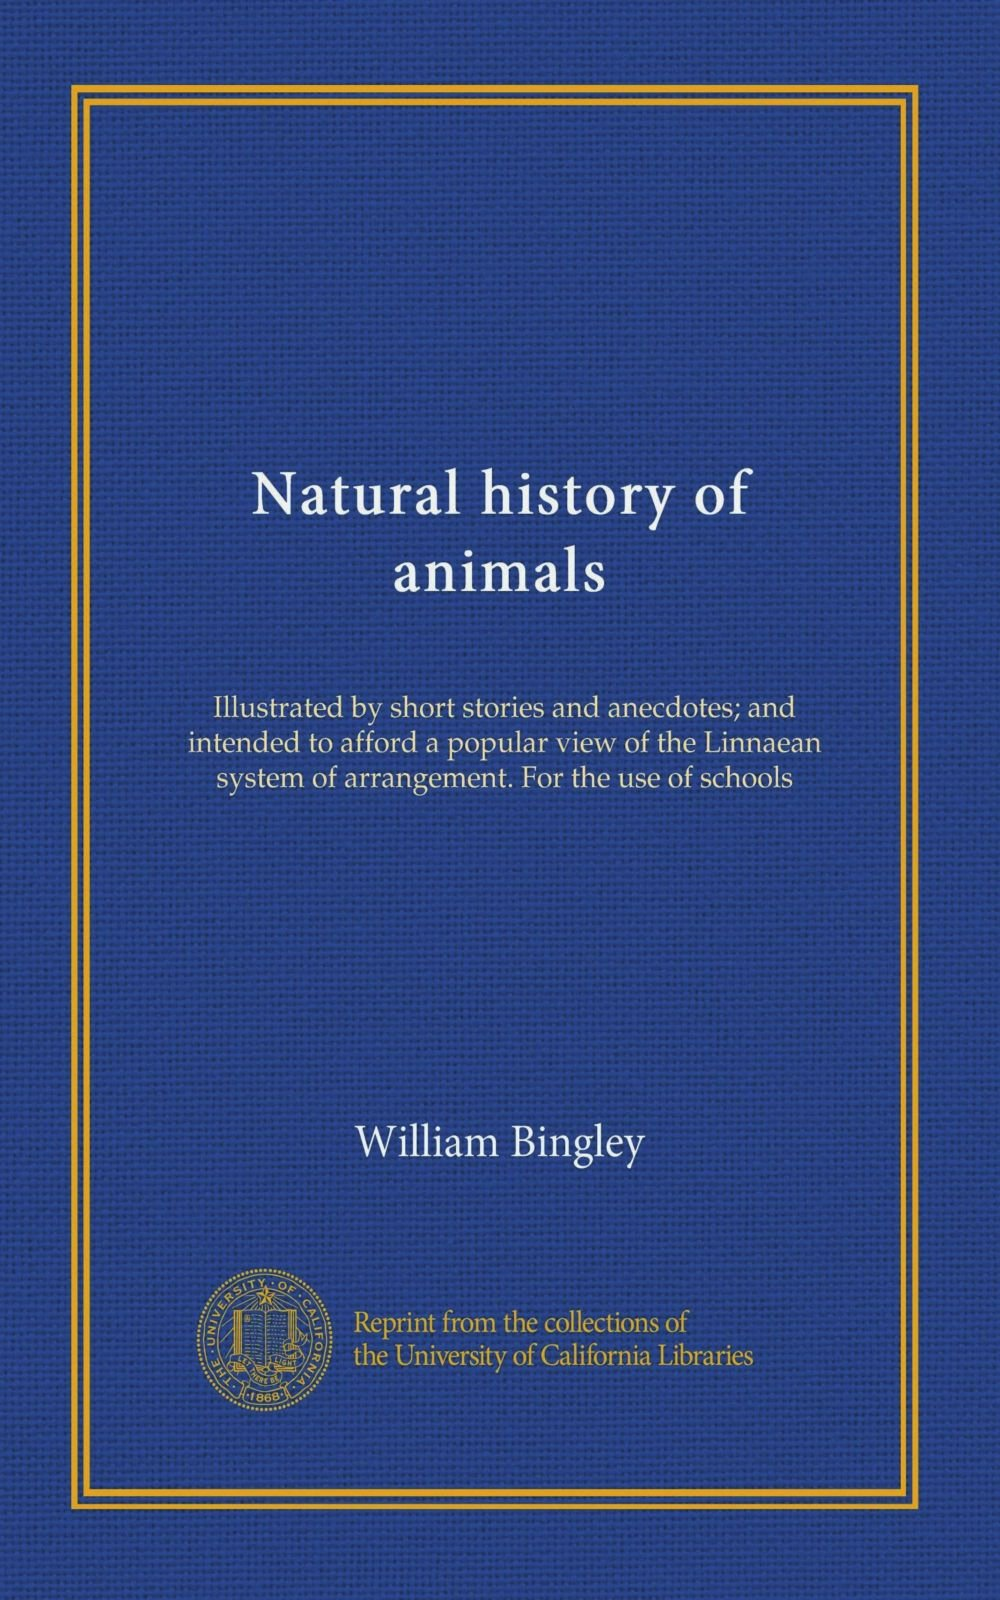 Natural history of animals: Illustrated by short stories and anecdotes; and intended to afford a popular view of the Linnaean system of arrangement. For the use of schools pdf